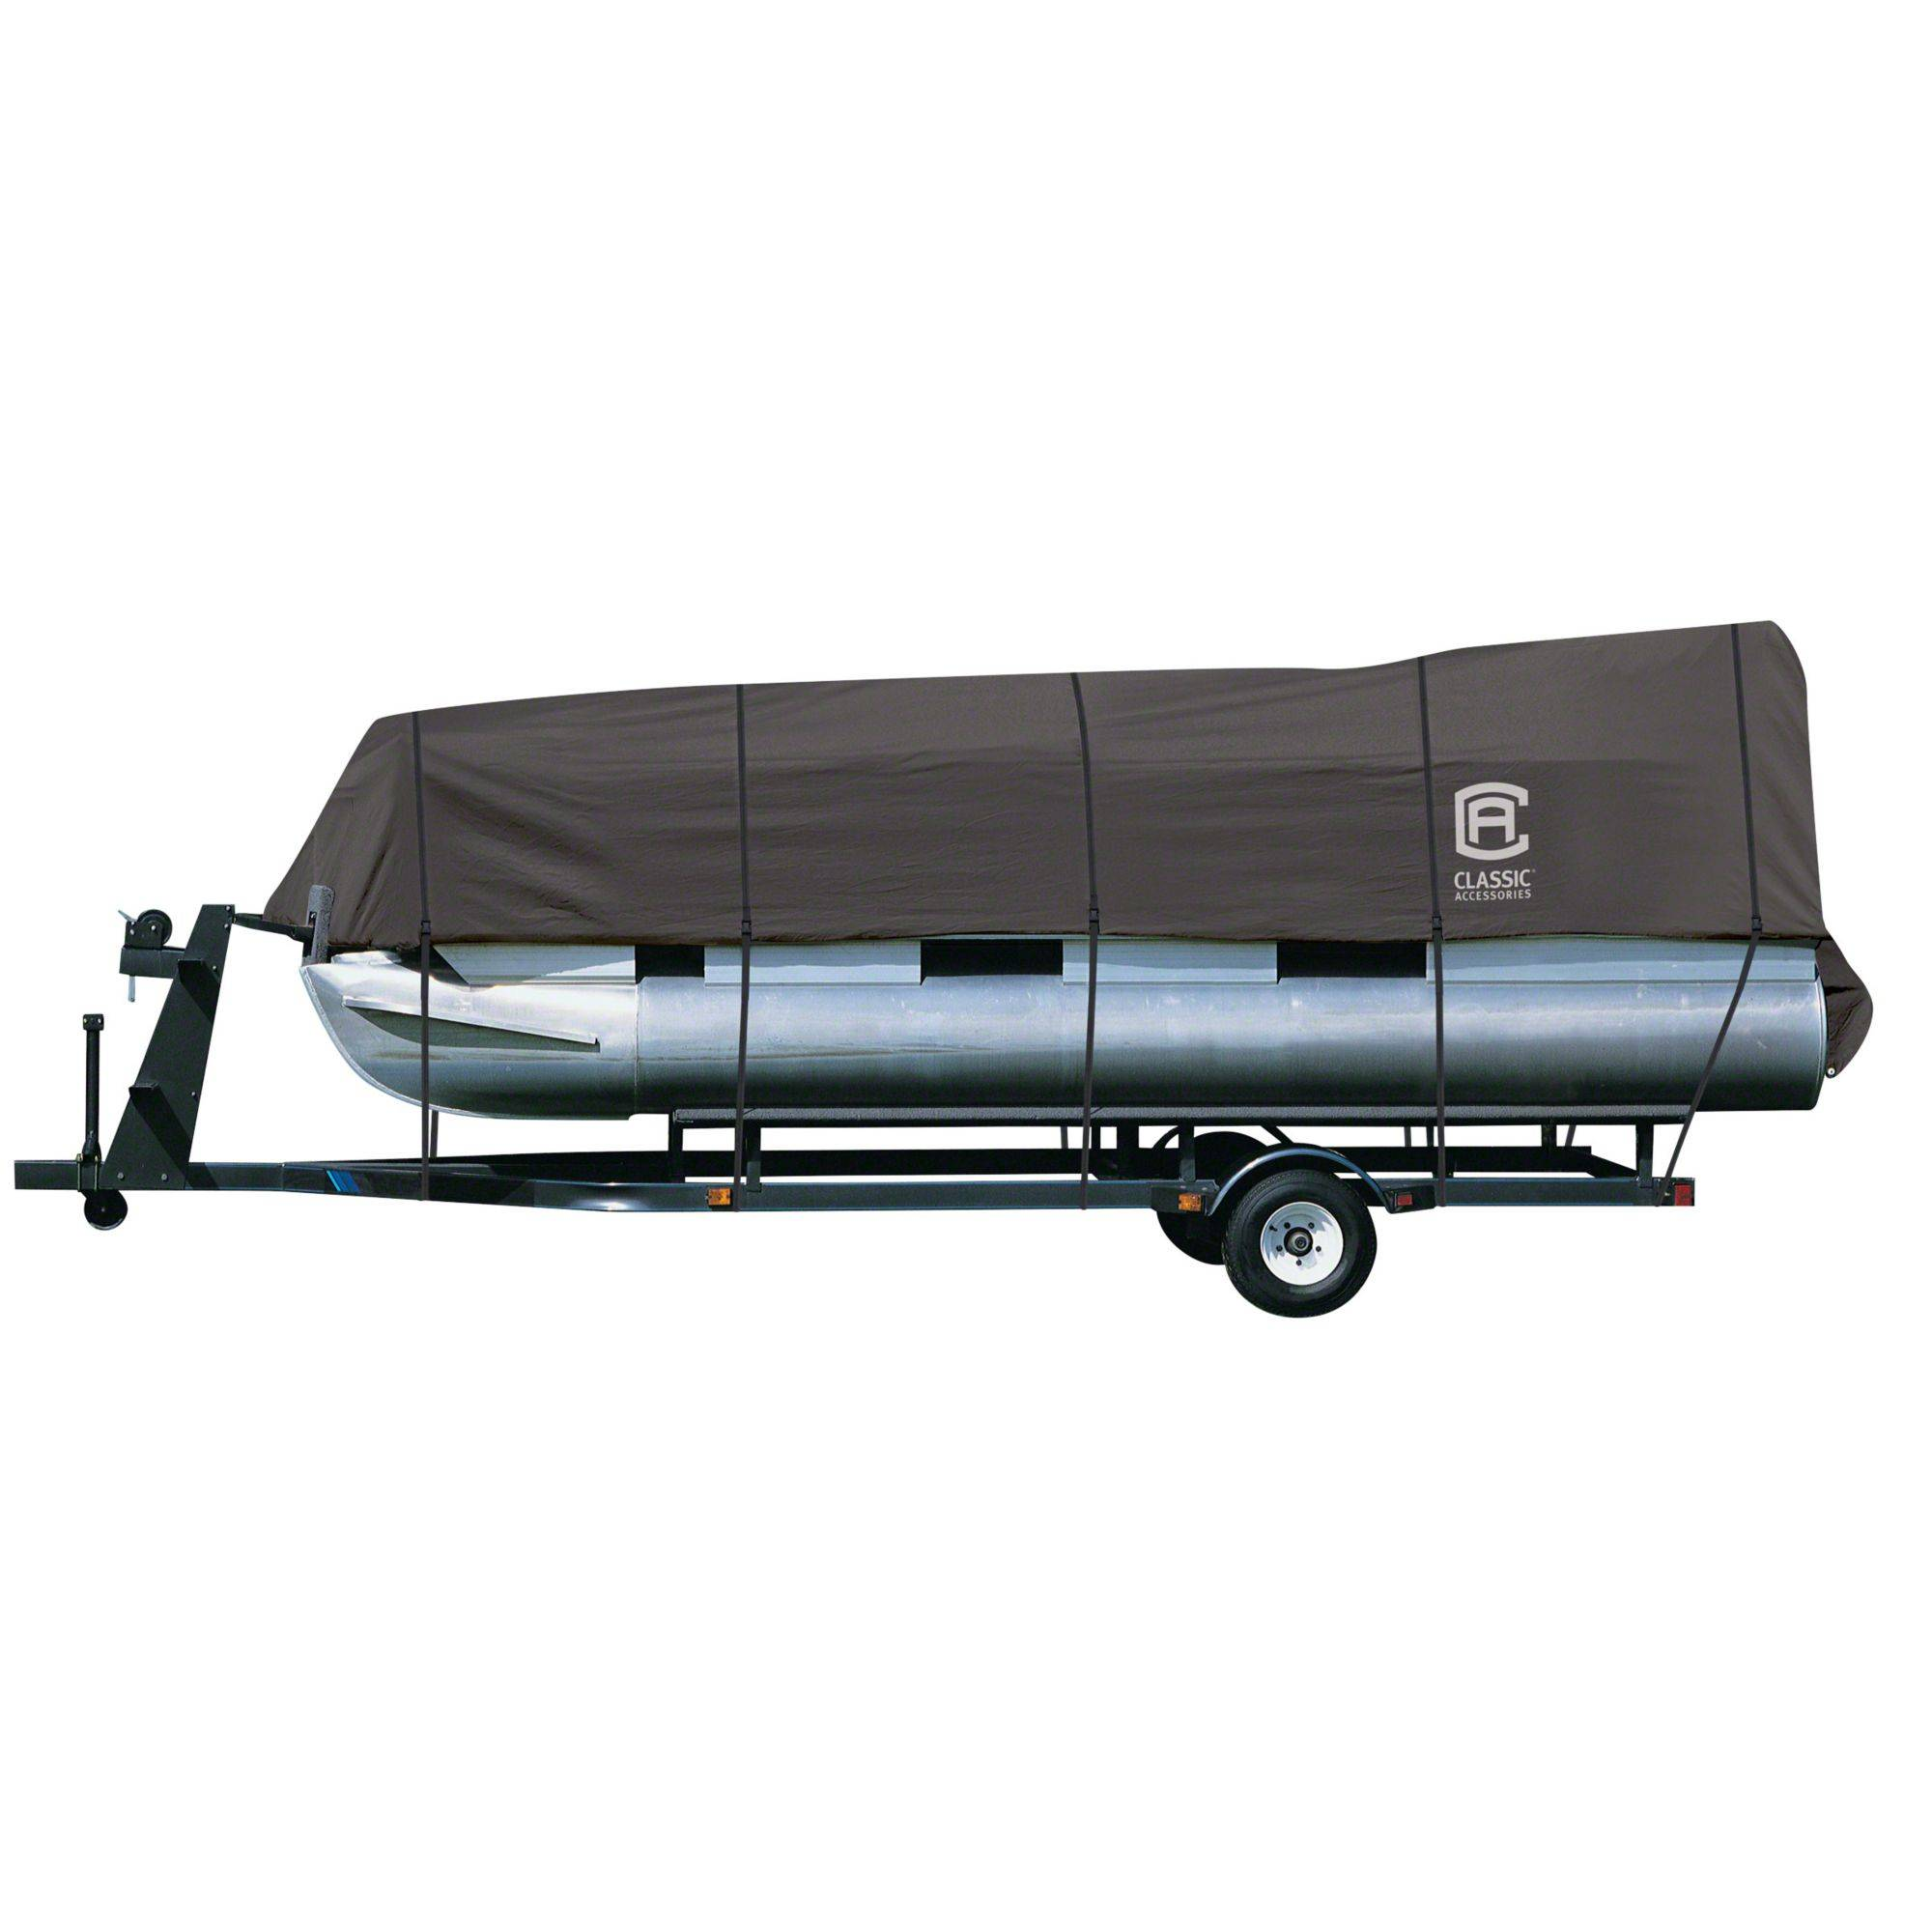 Classic Accessories StormPro Pontoon Boat Cover, Charcoal